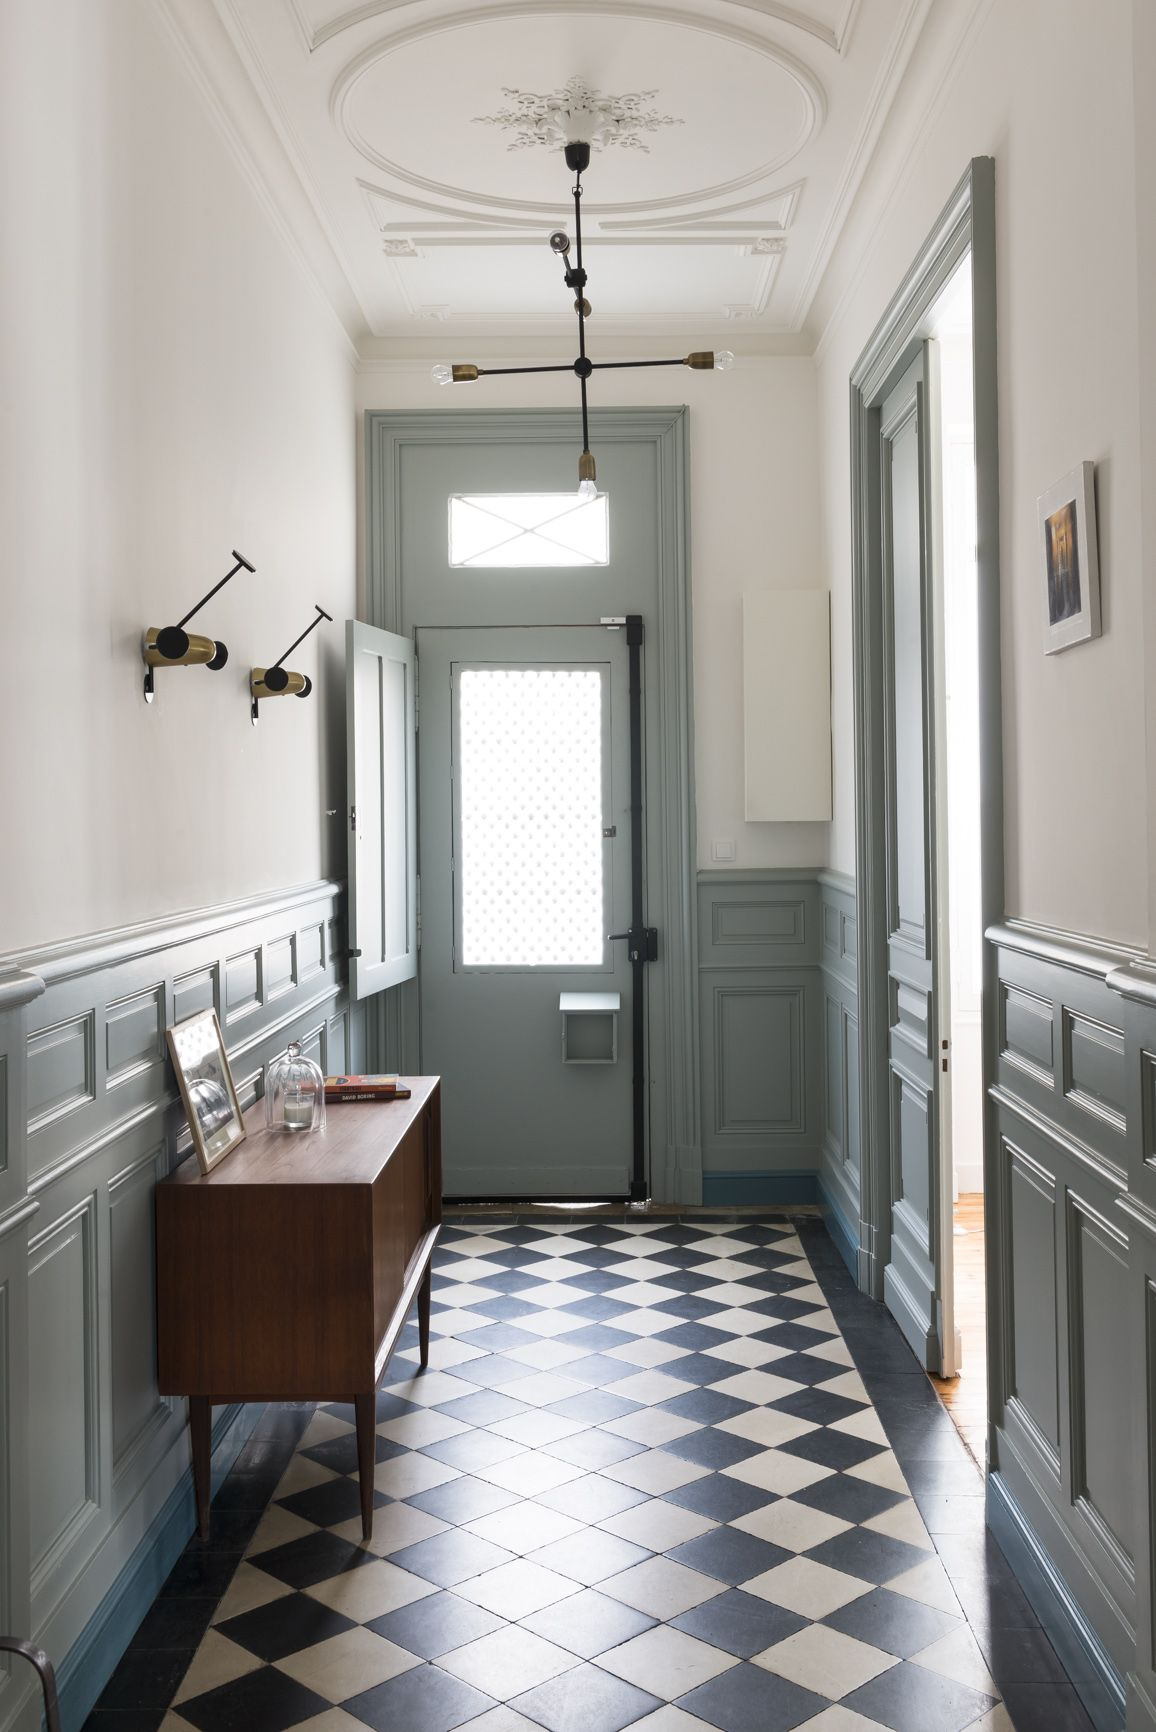 Best 25 maison bourgeoise ideas on pinterest boiseries for Decoration faience couloir